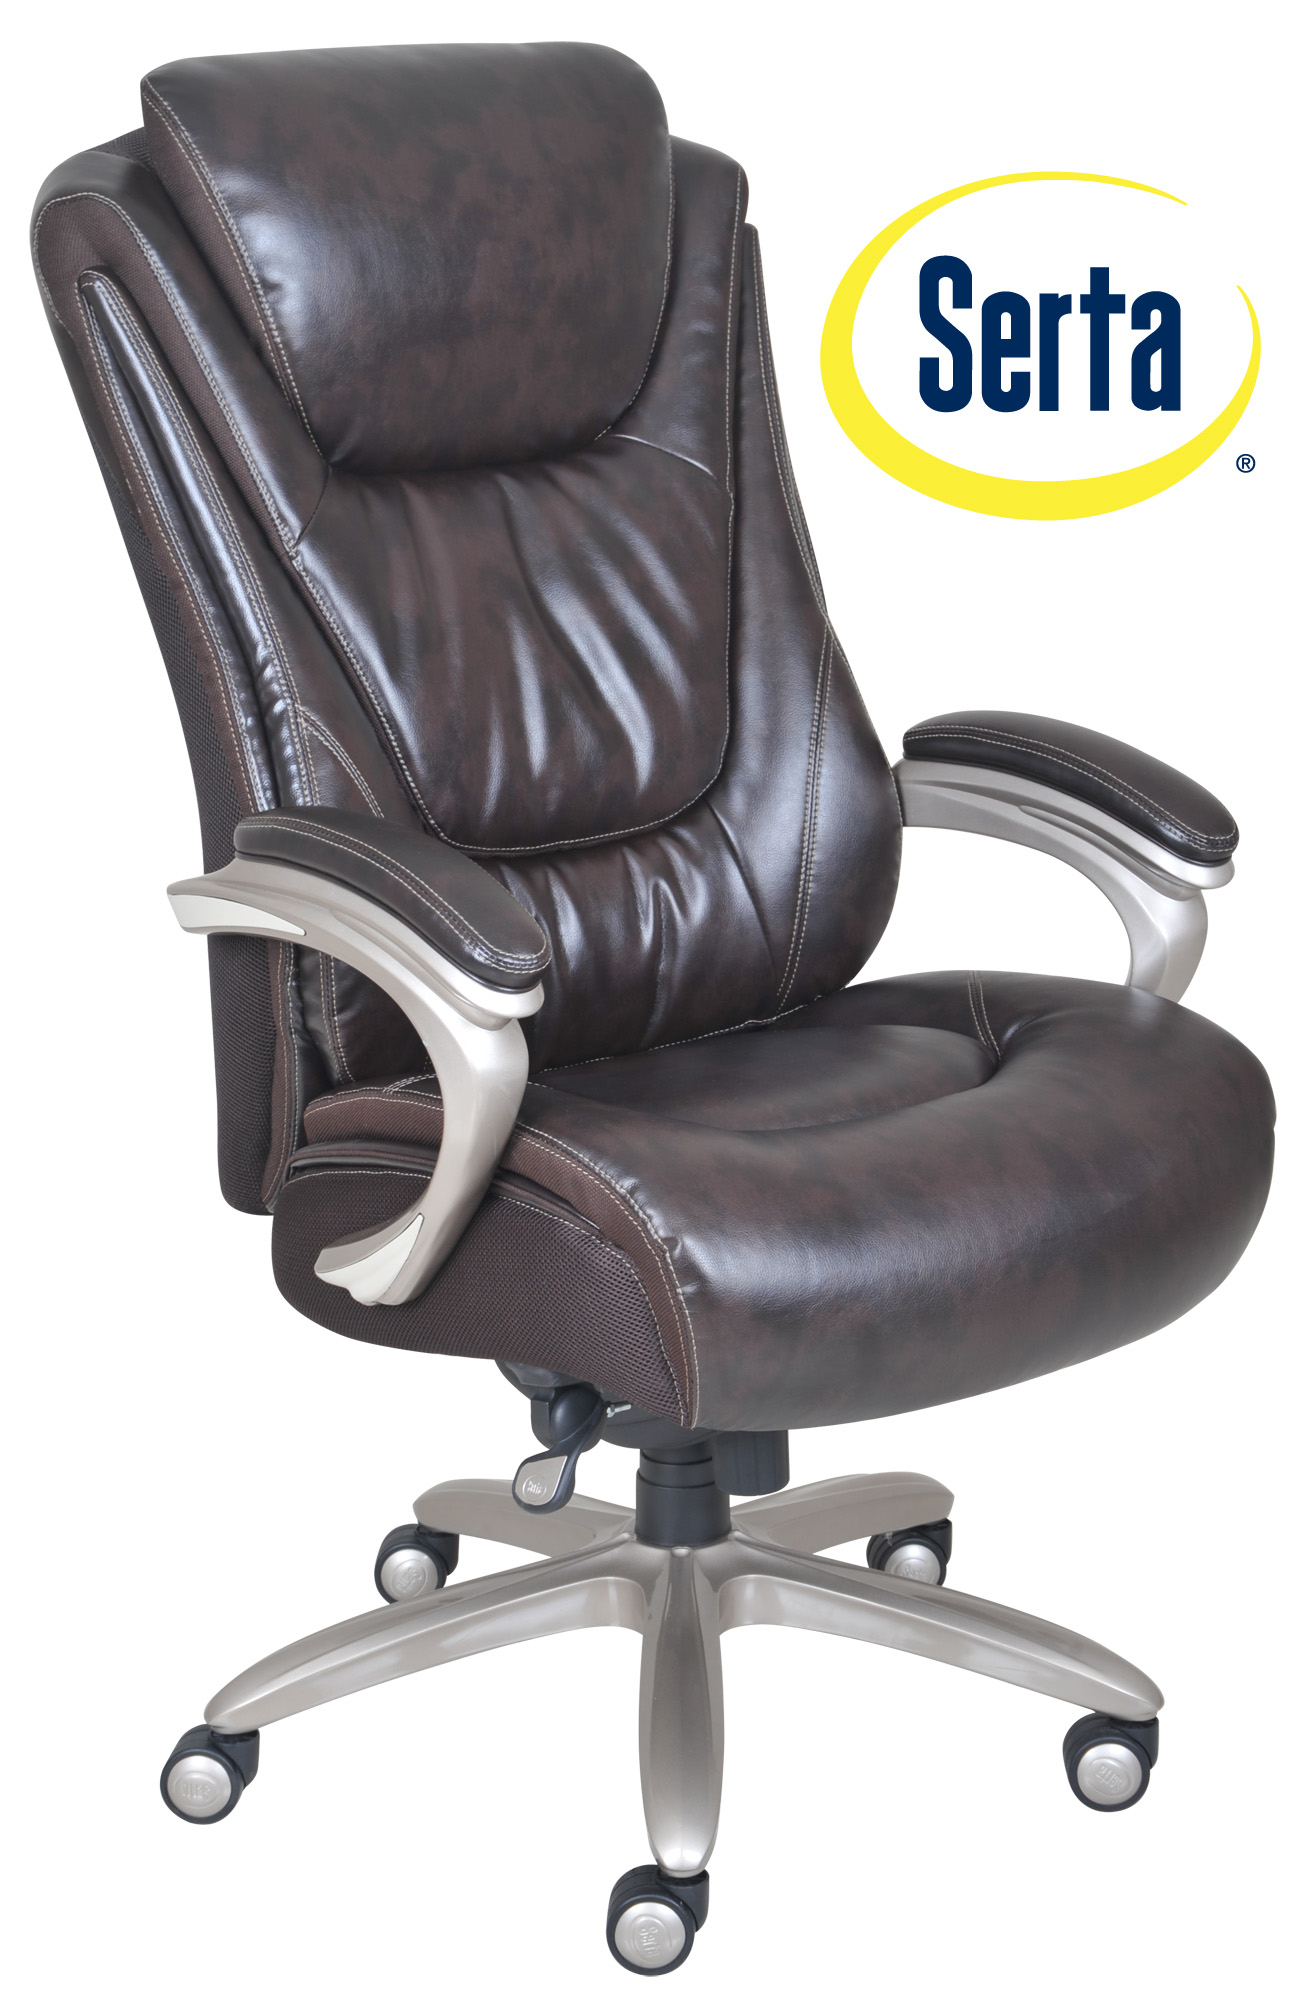 serta bonded leather executive chair stackable chairs for sale big and tall smart layers premium ultra